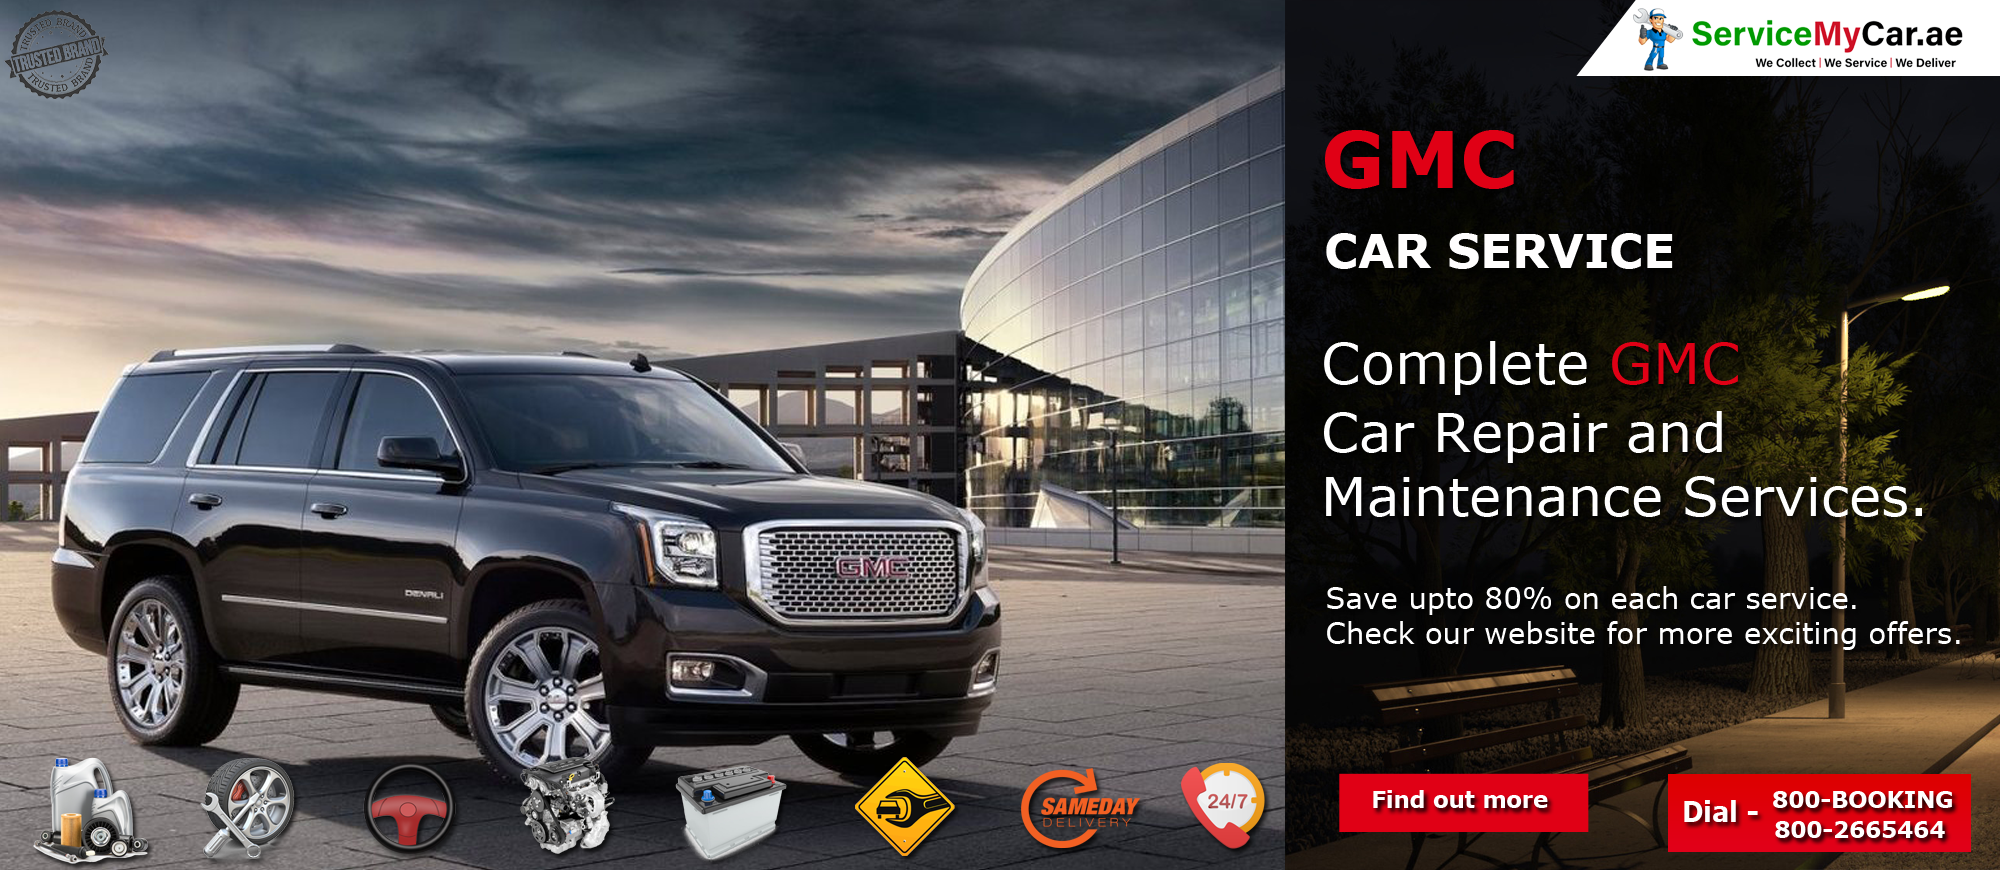 Gmc Car Repair Less Price Fast Service Online Booking Online Secure Payment Collect And Deliver At You Car Service Dubai Car Repair Dubai Uae Car Dubai Dubai Cars